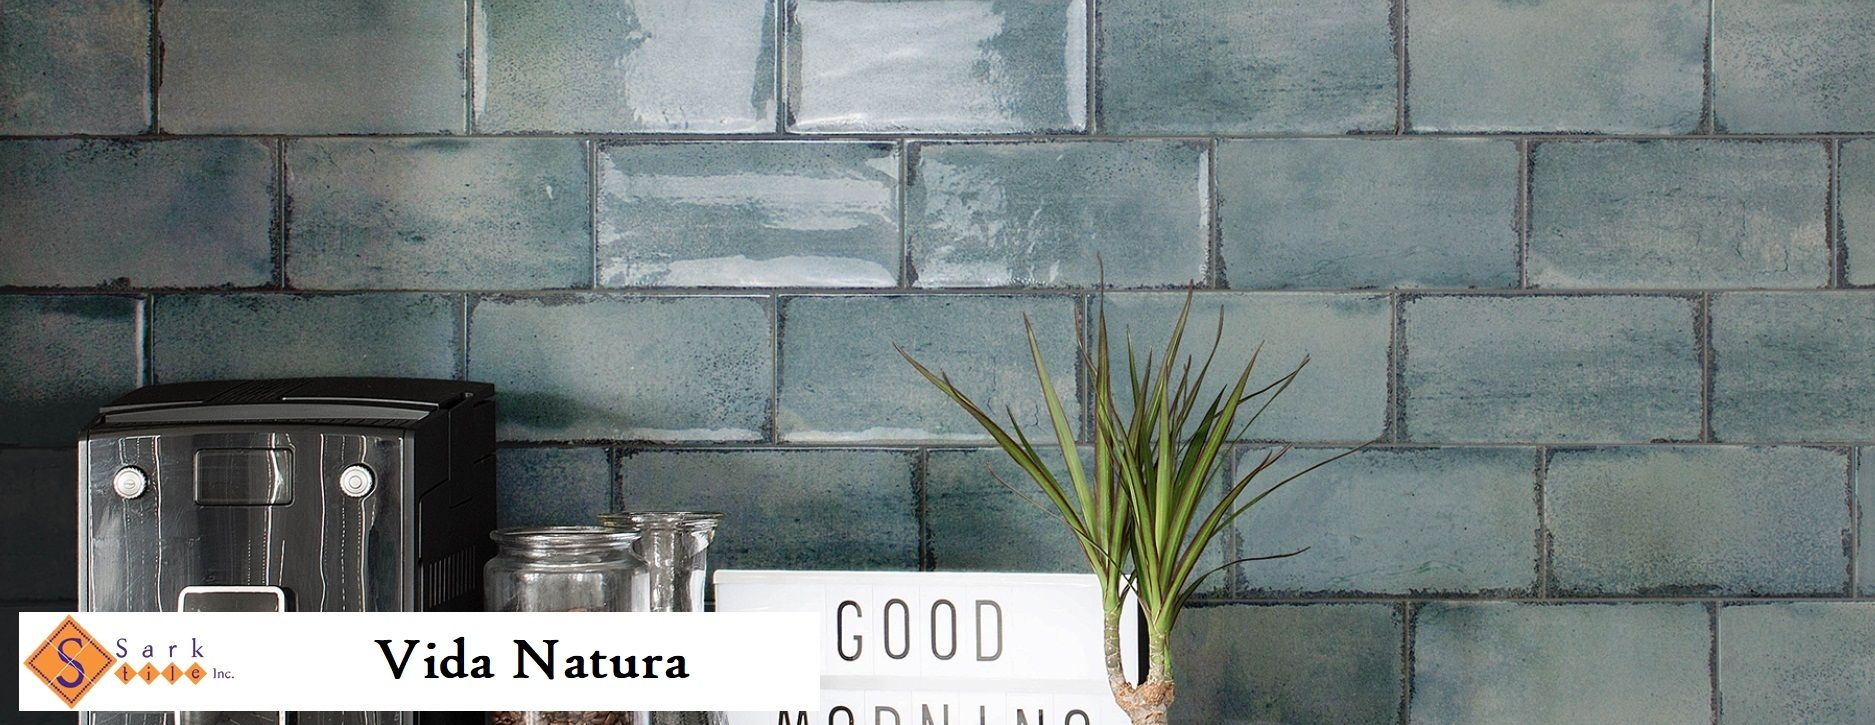 Vida Natura 4x8 Glazed Wall Tile By Sark Our